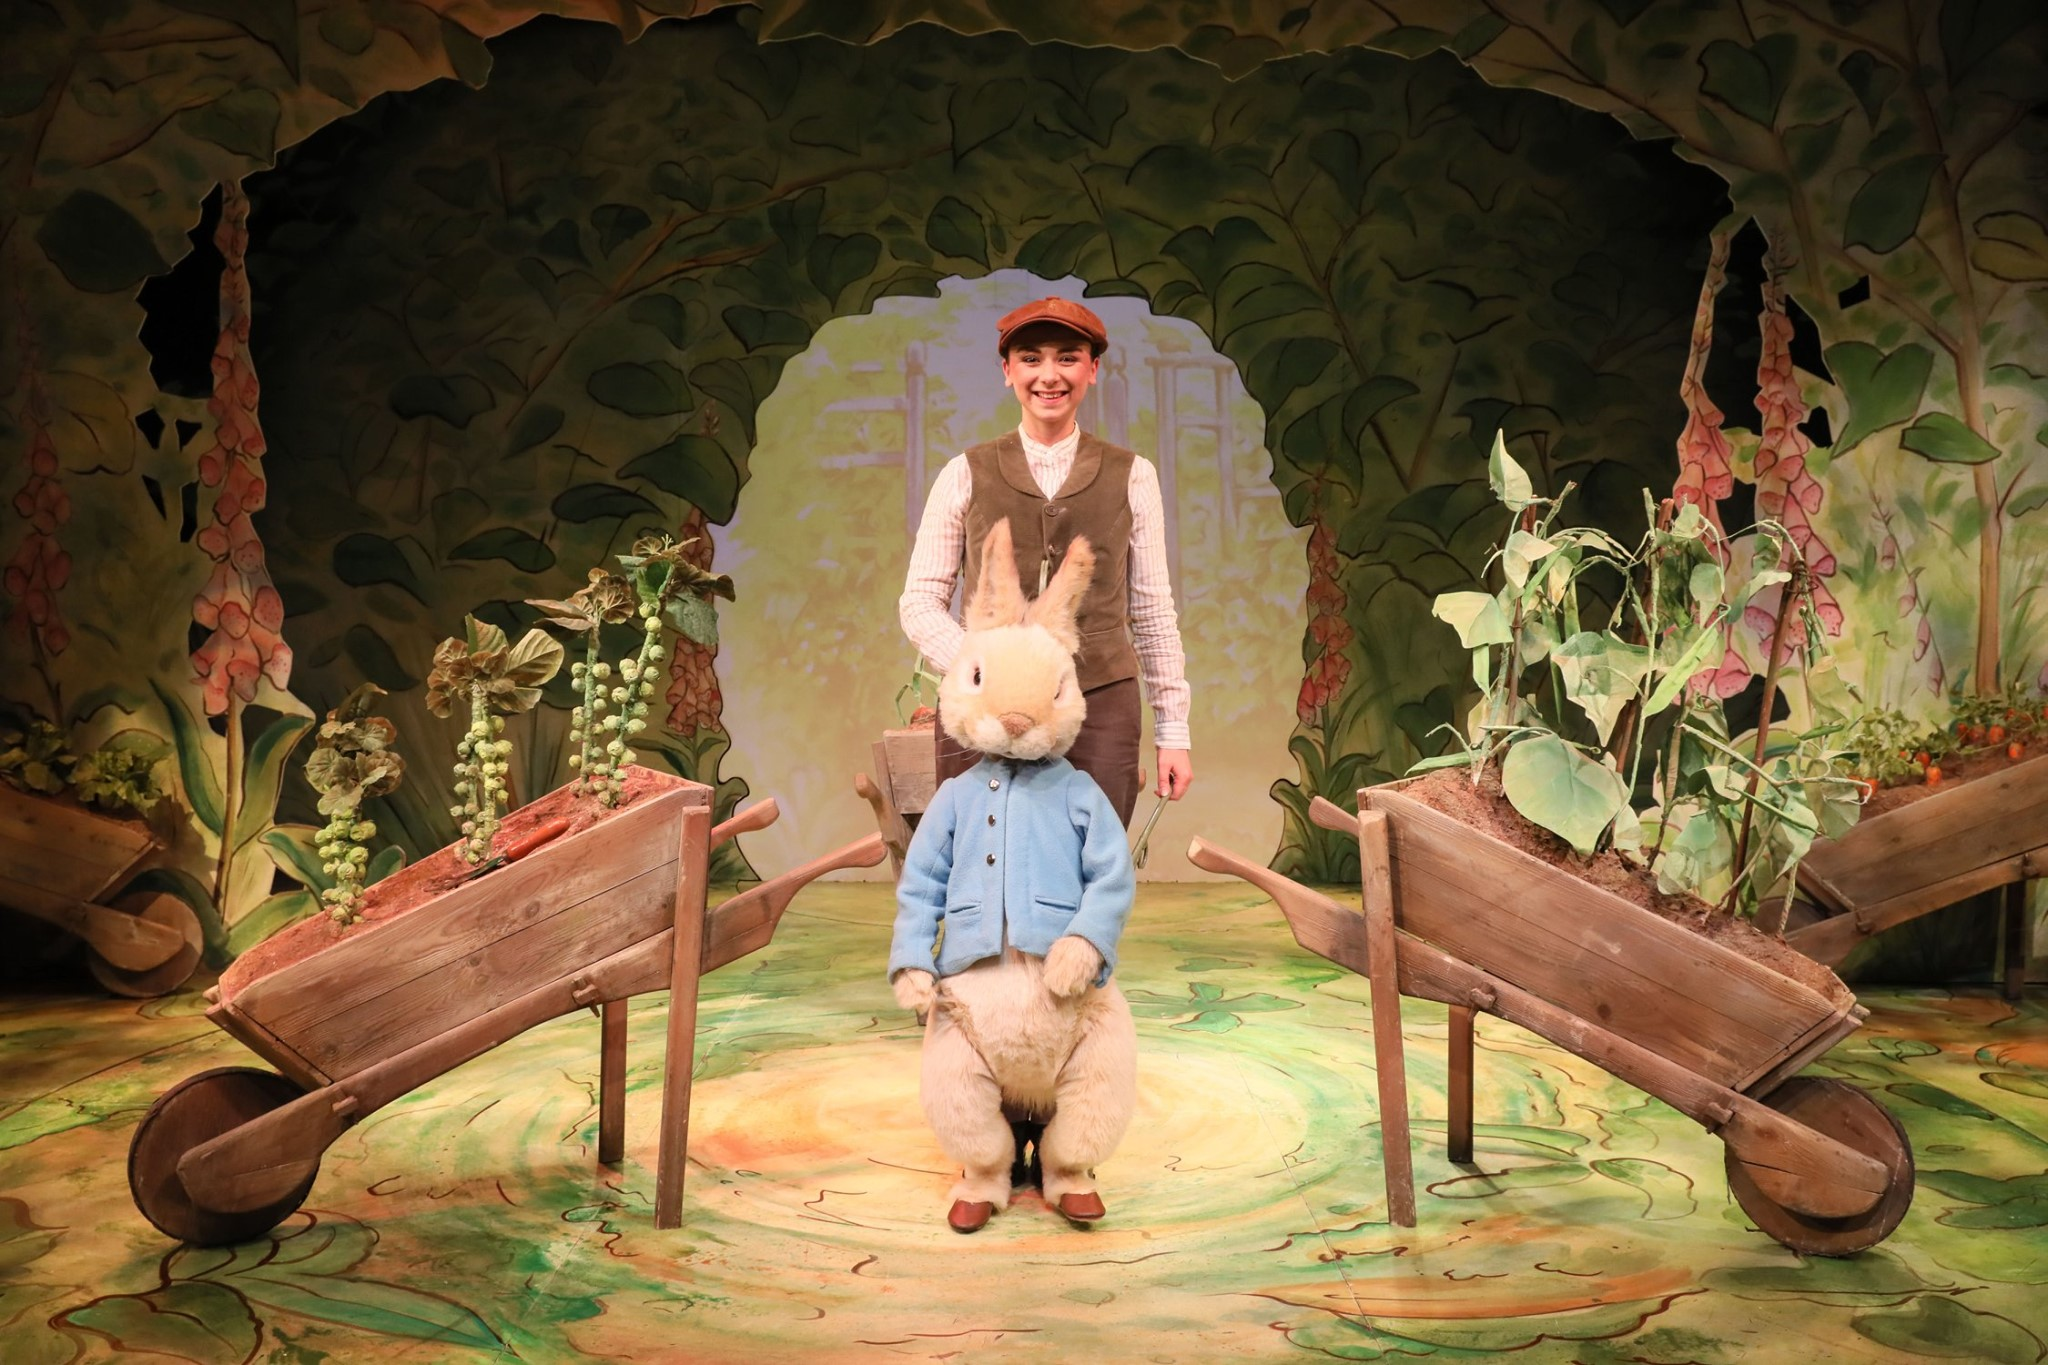 peter rabbit puppet on stage in where is peter rabbit